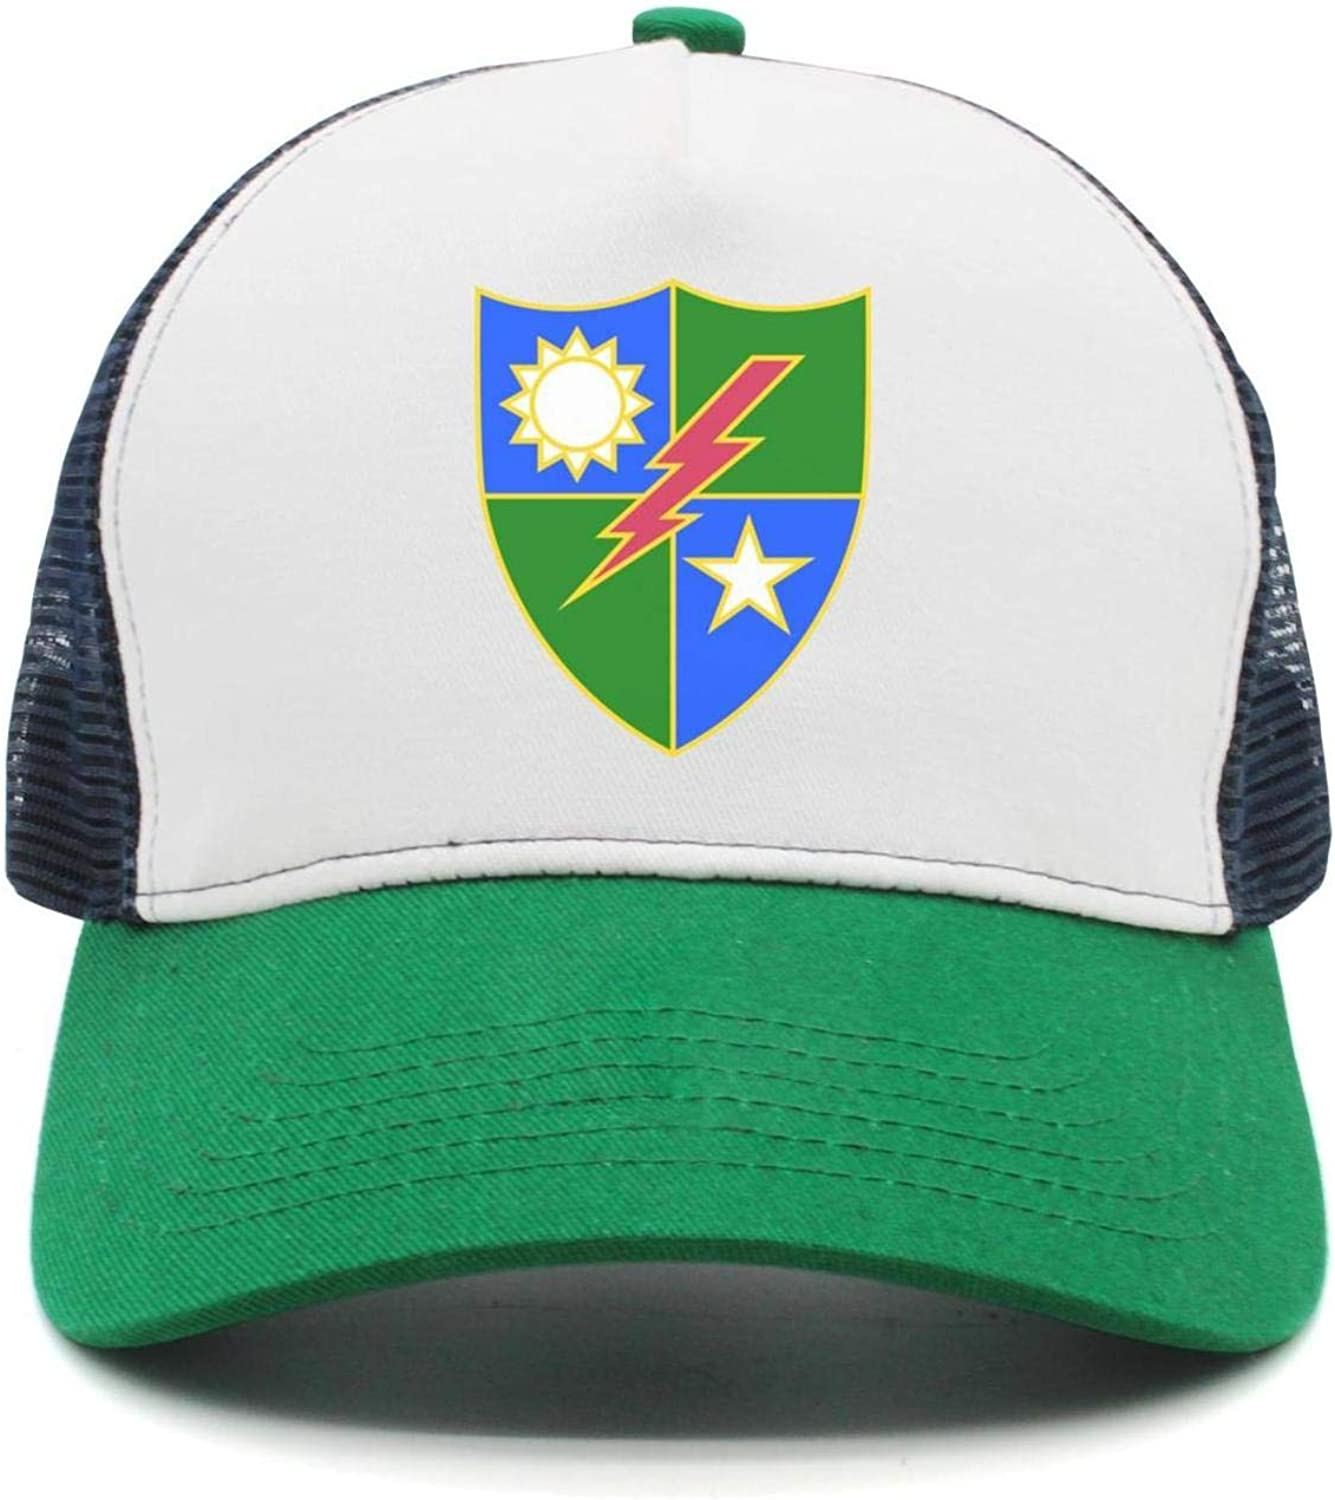 jdadaw United-States-Army-Air-Forces Woman Man Adjustable Flat Bill Baseball Caps Cool Hat Trucker Hats